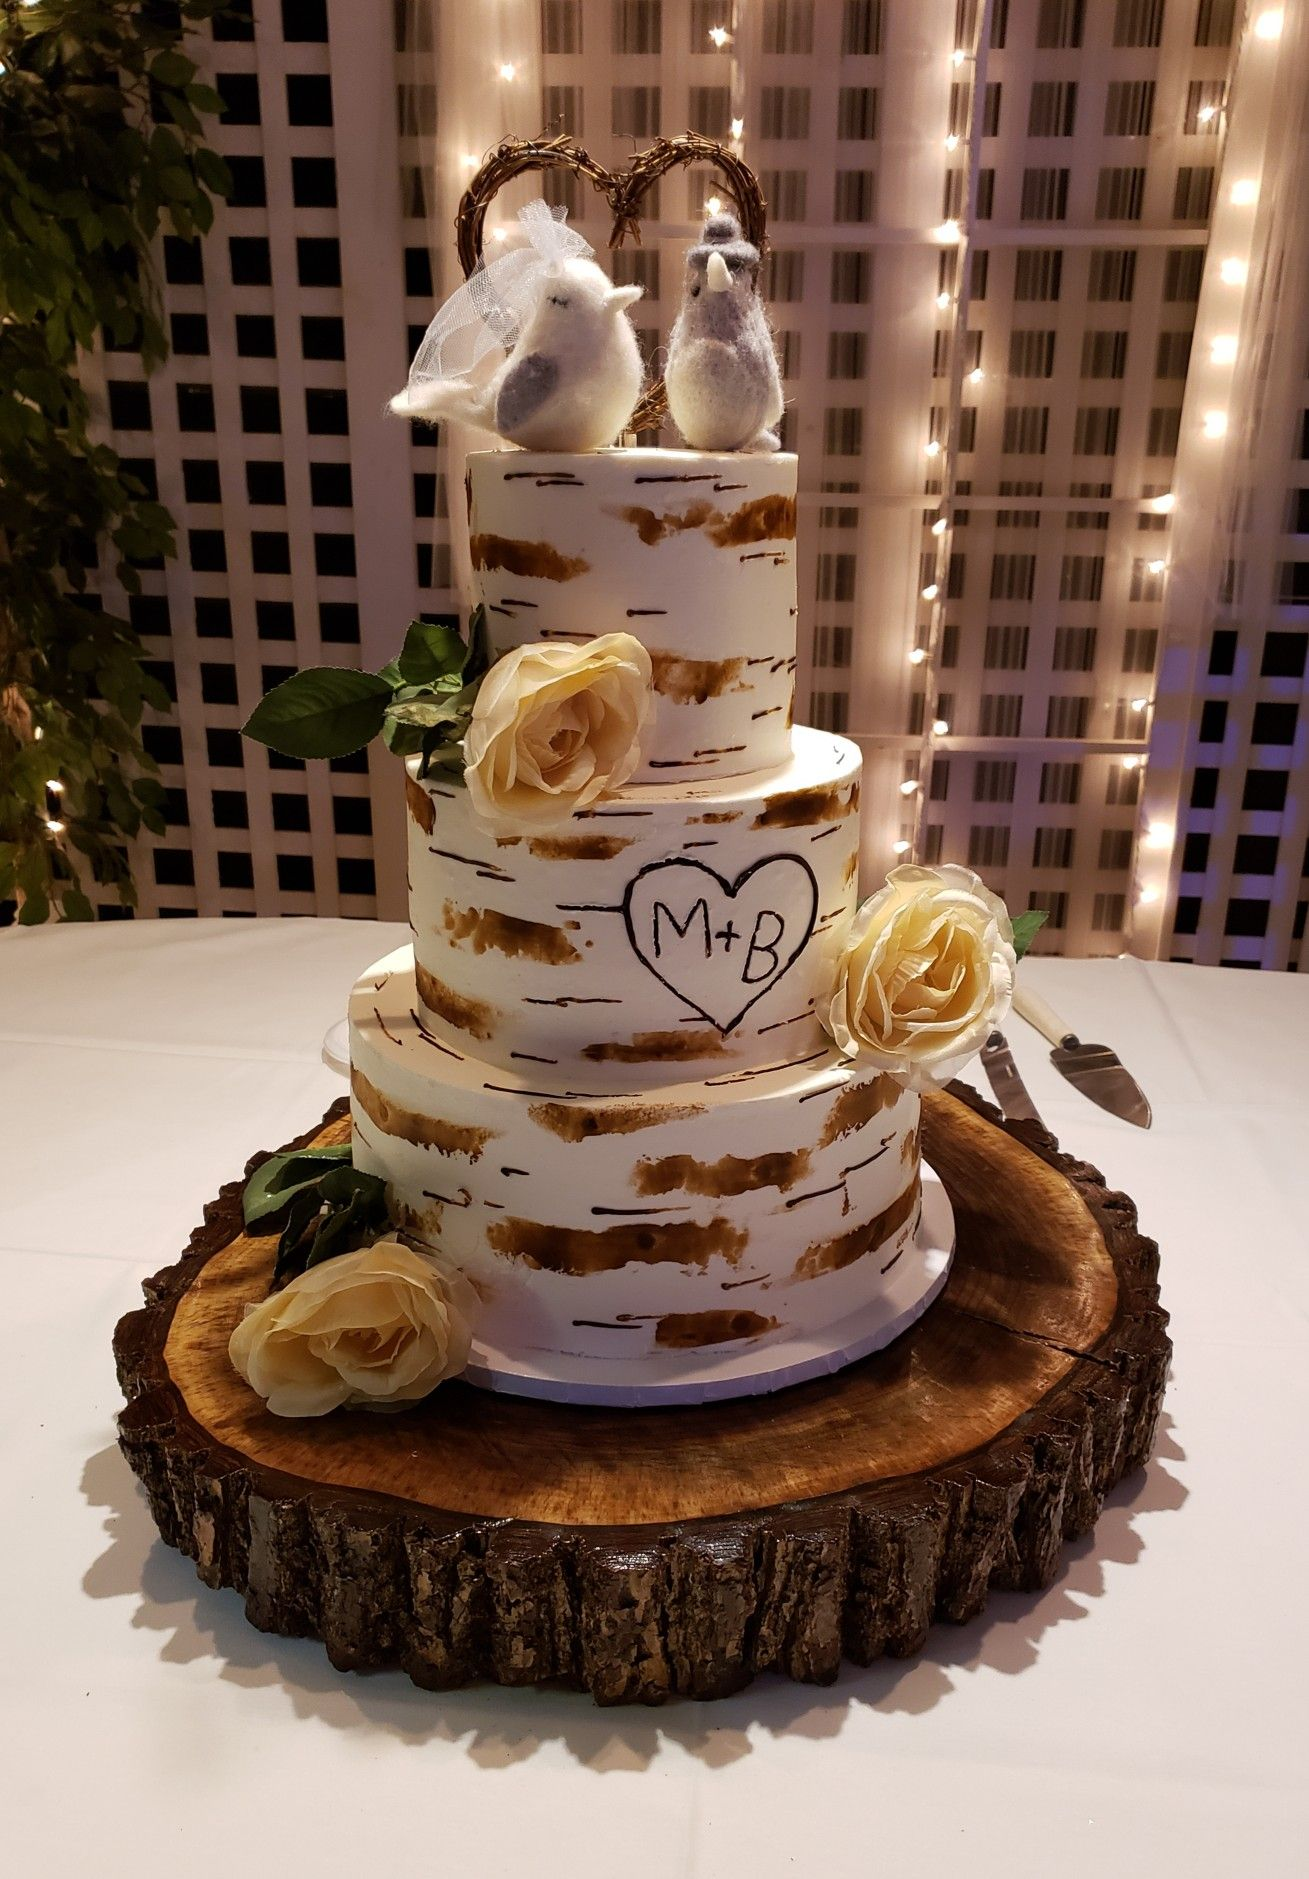 Birch Tree Cake With Lovebirds On The Top With Images Birch